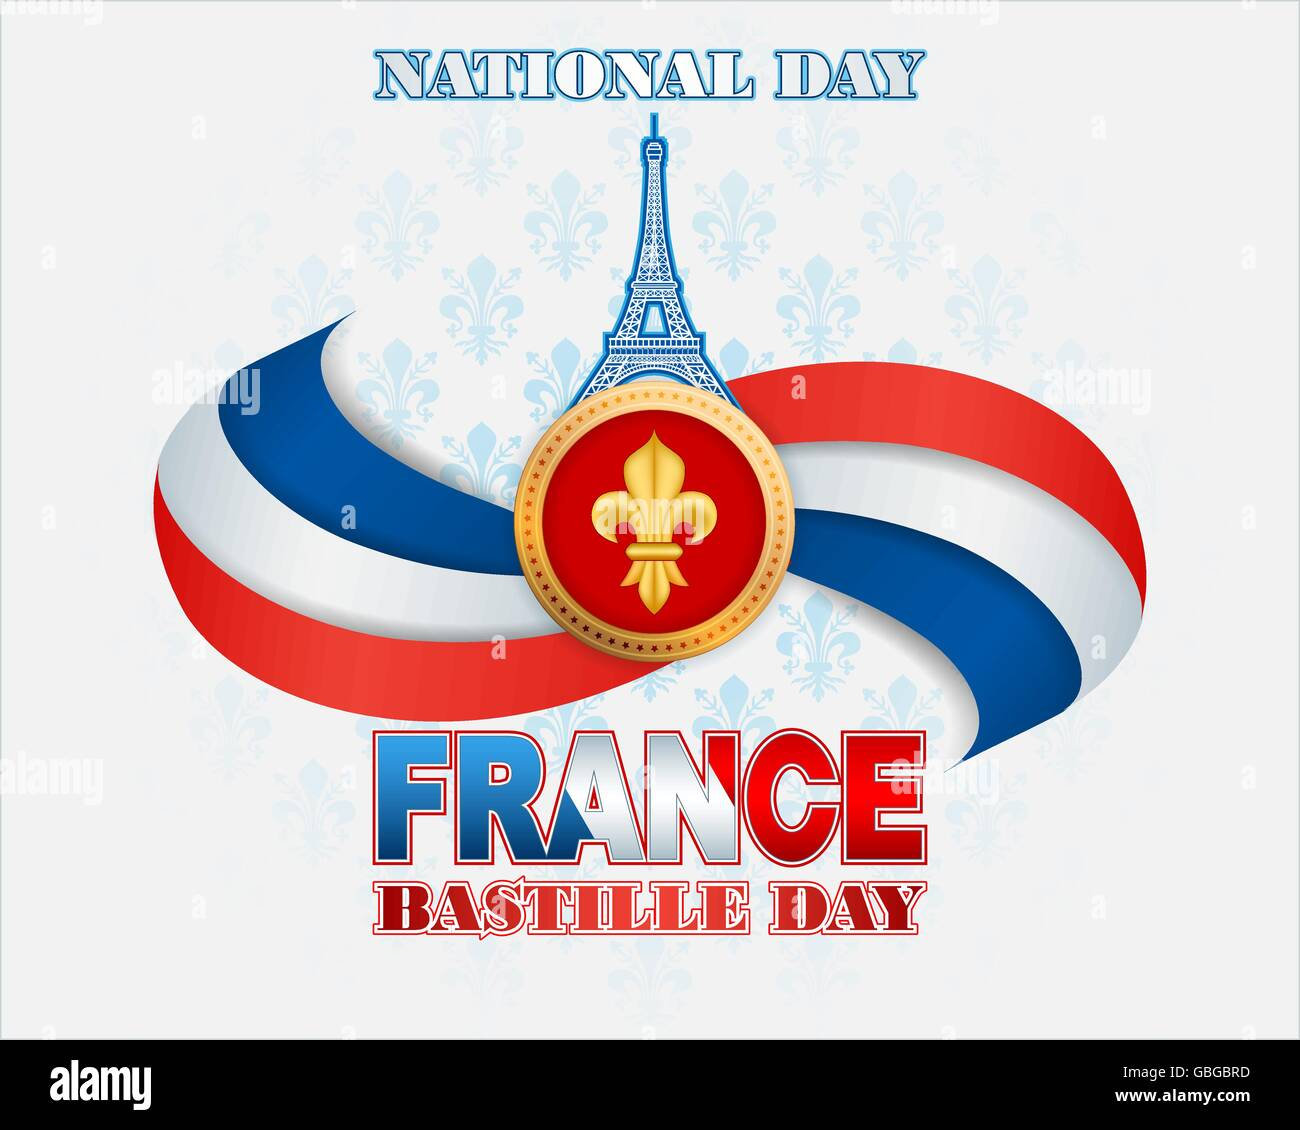 Background with the france flag colors eiffel tower shape and lily background with the france flag colors eiffel tower shape and lily flower symbol for national day of france bastille day izmirmasajfo Choice Image